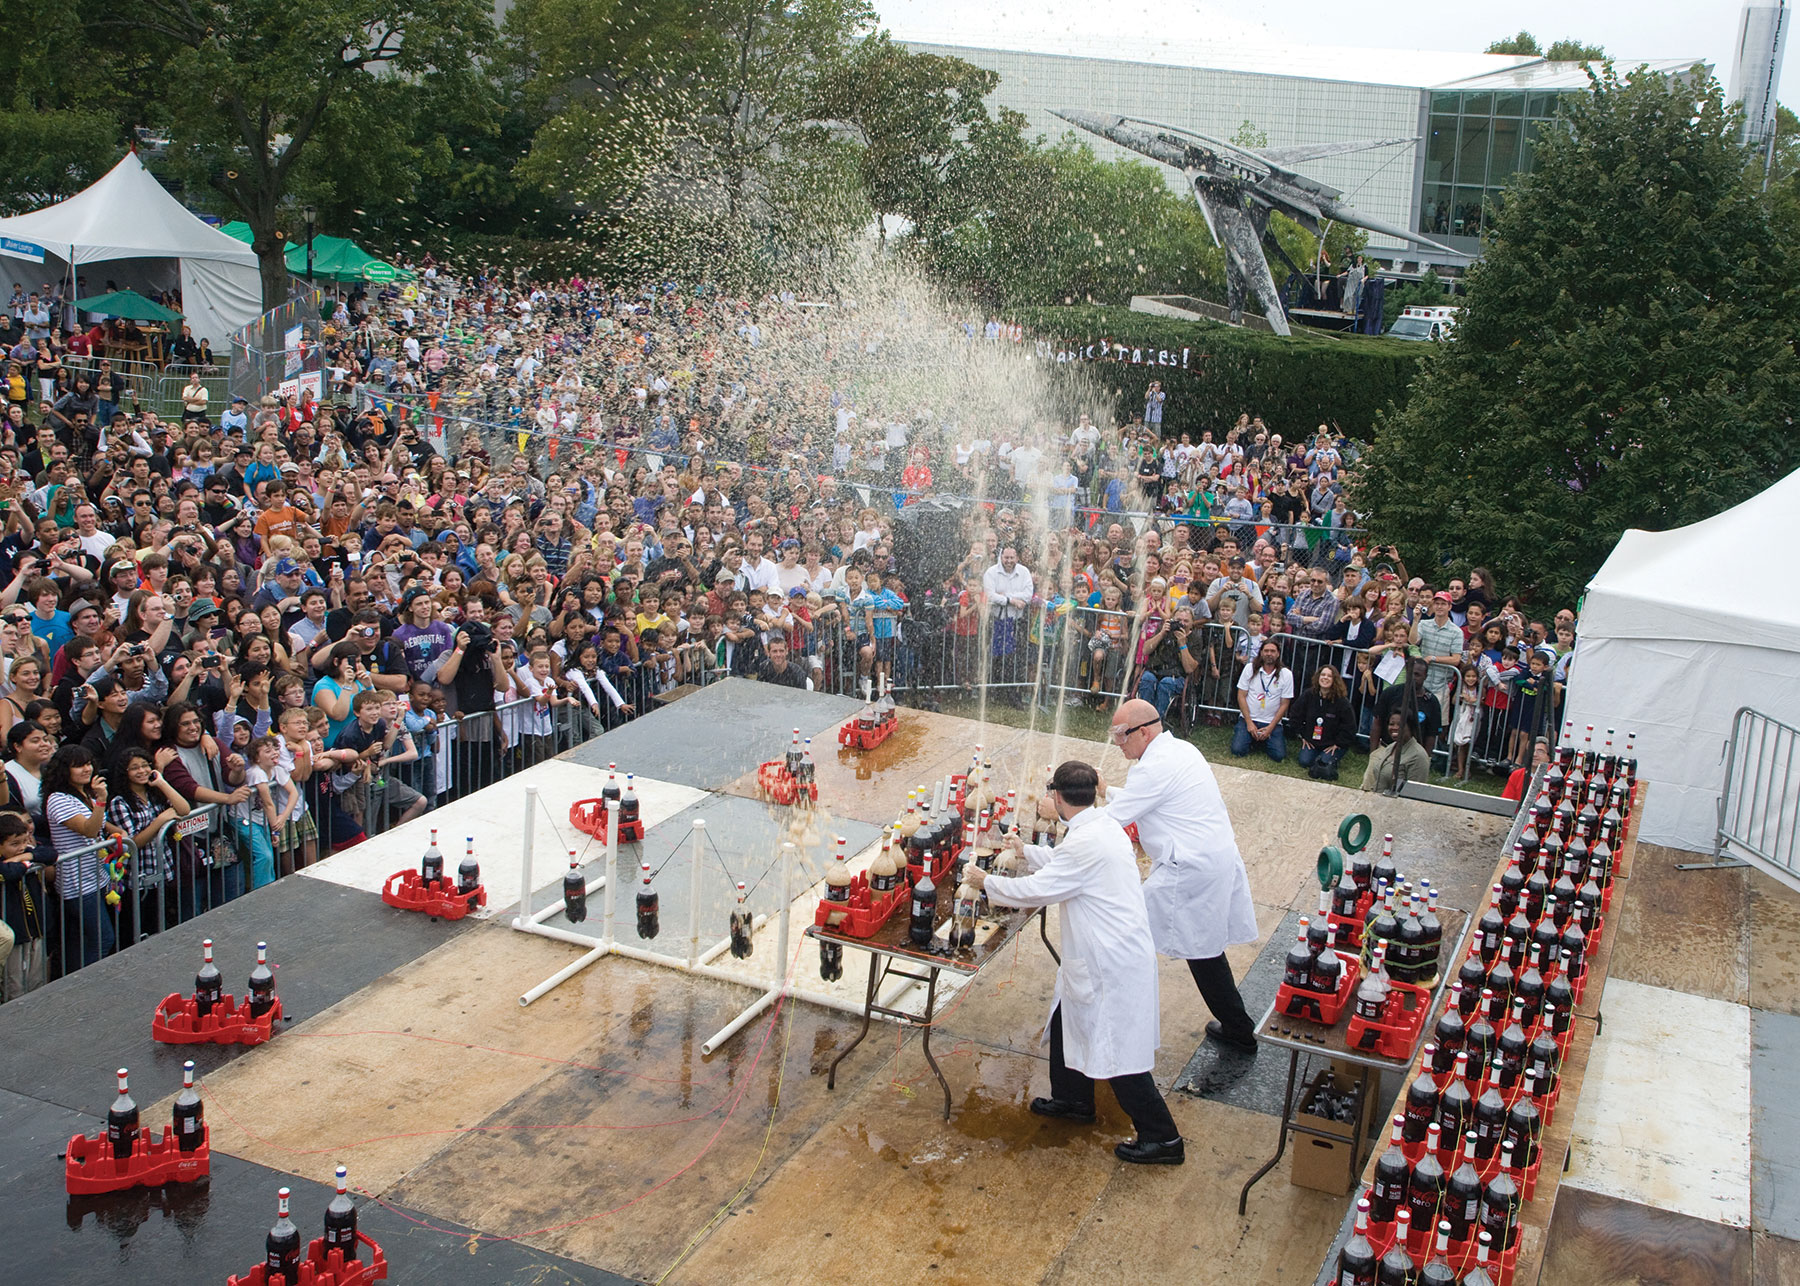 Fueled by Coke Zero, Mentos, and Science!